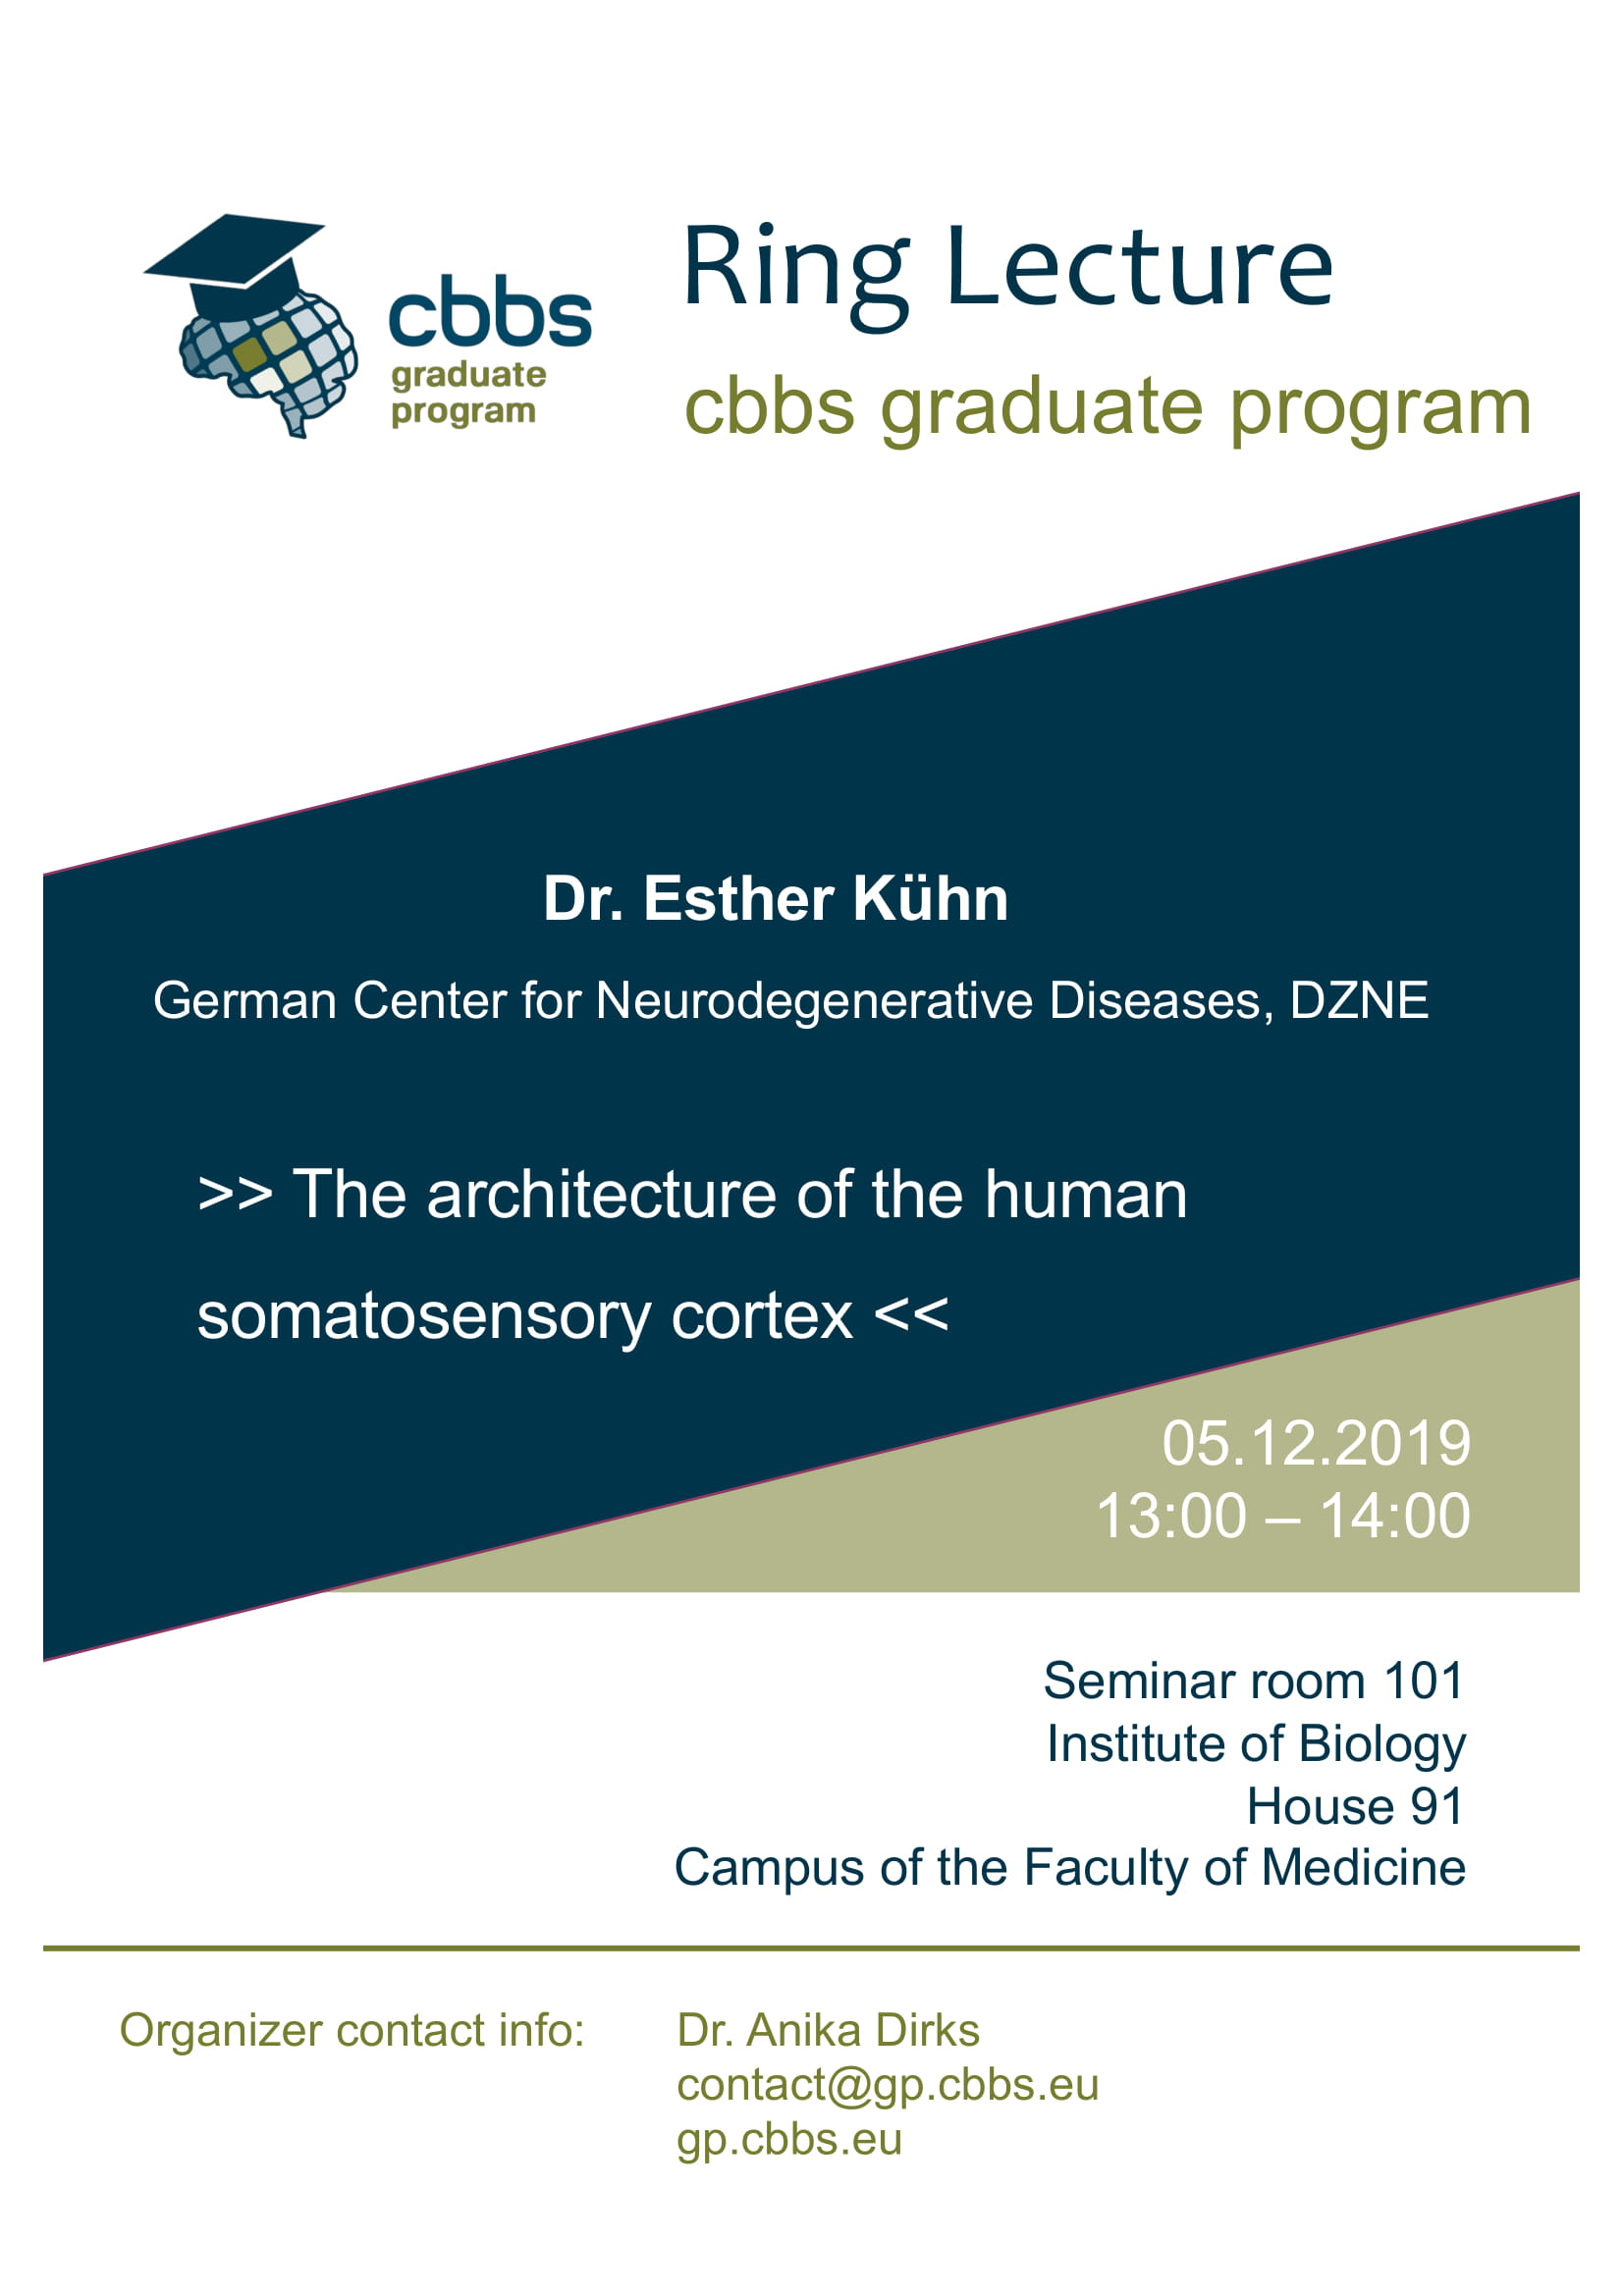 CBBS GP Ringlecture: The architecture of the human somatosensory cortex @ Institute of Biology, House 91, Seminarroom 101